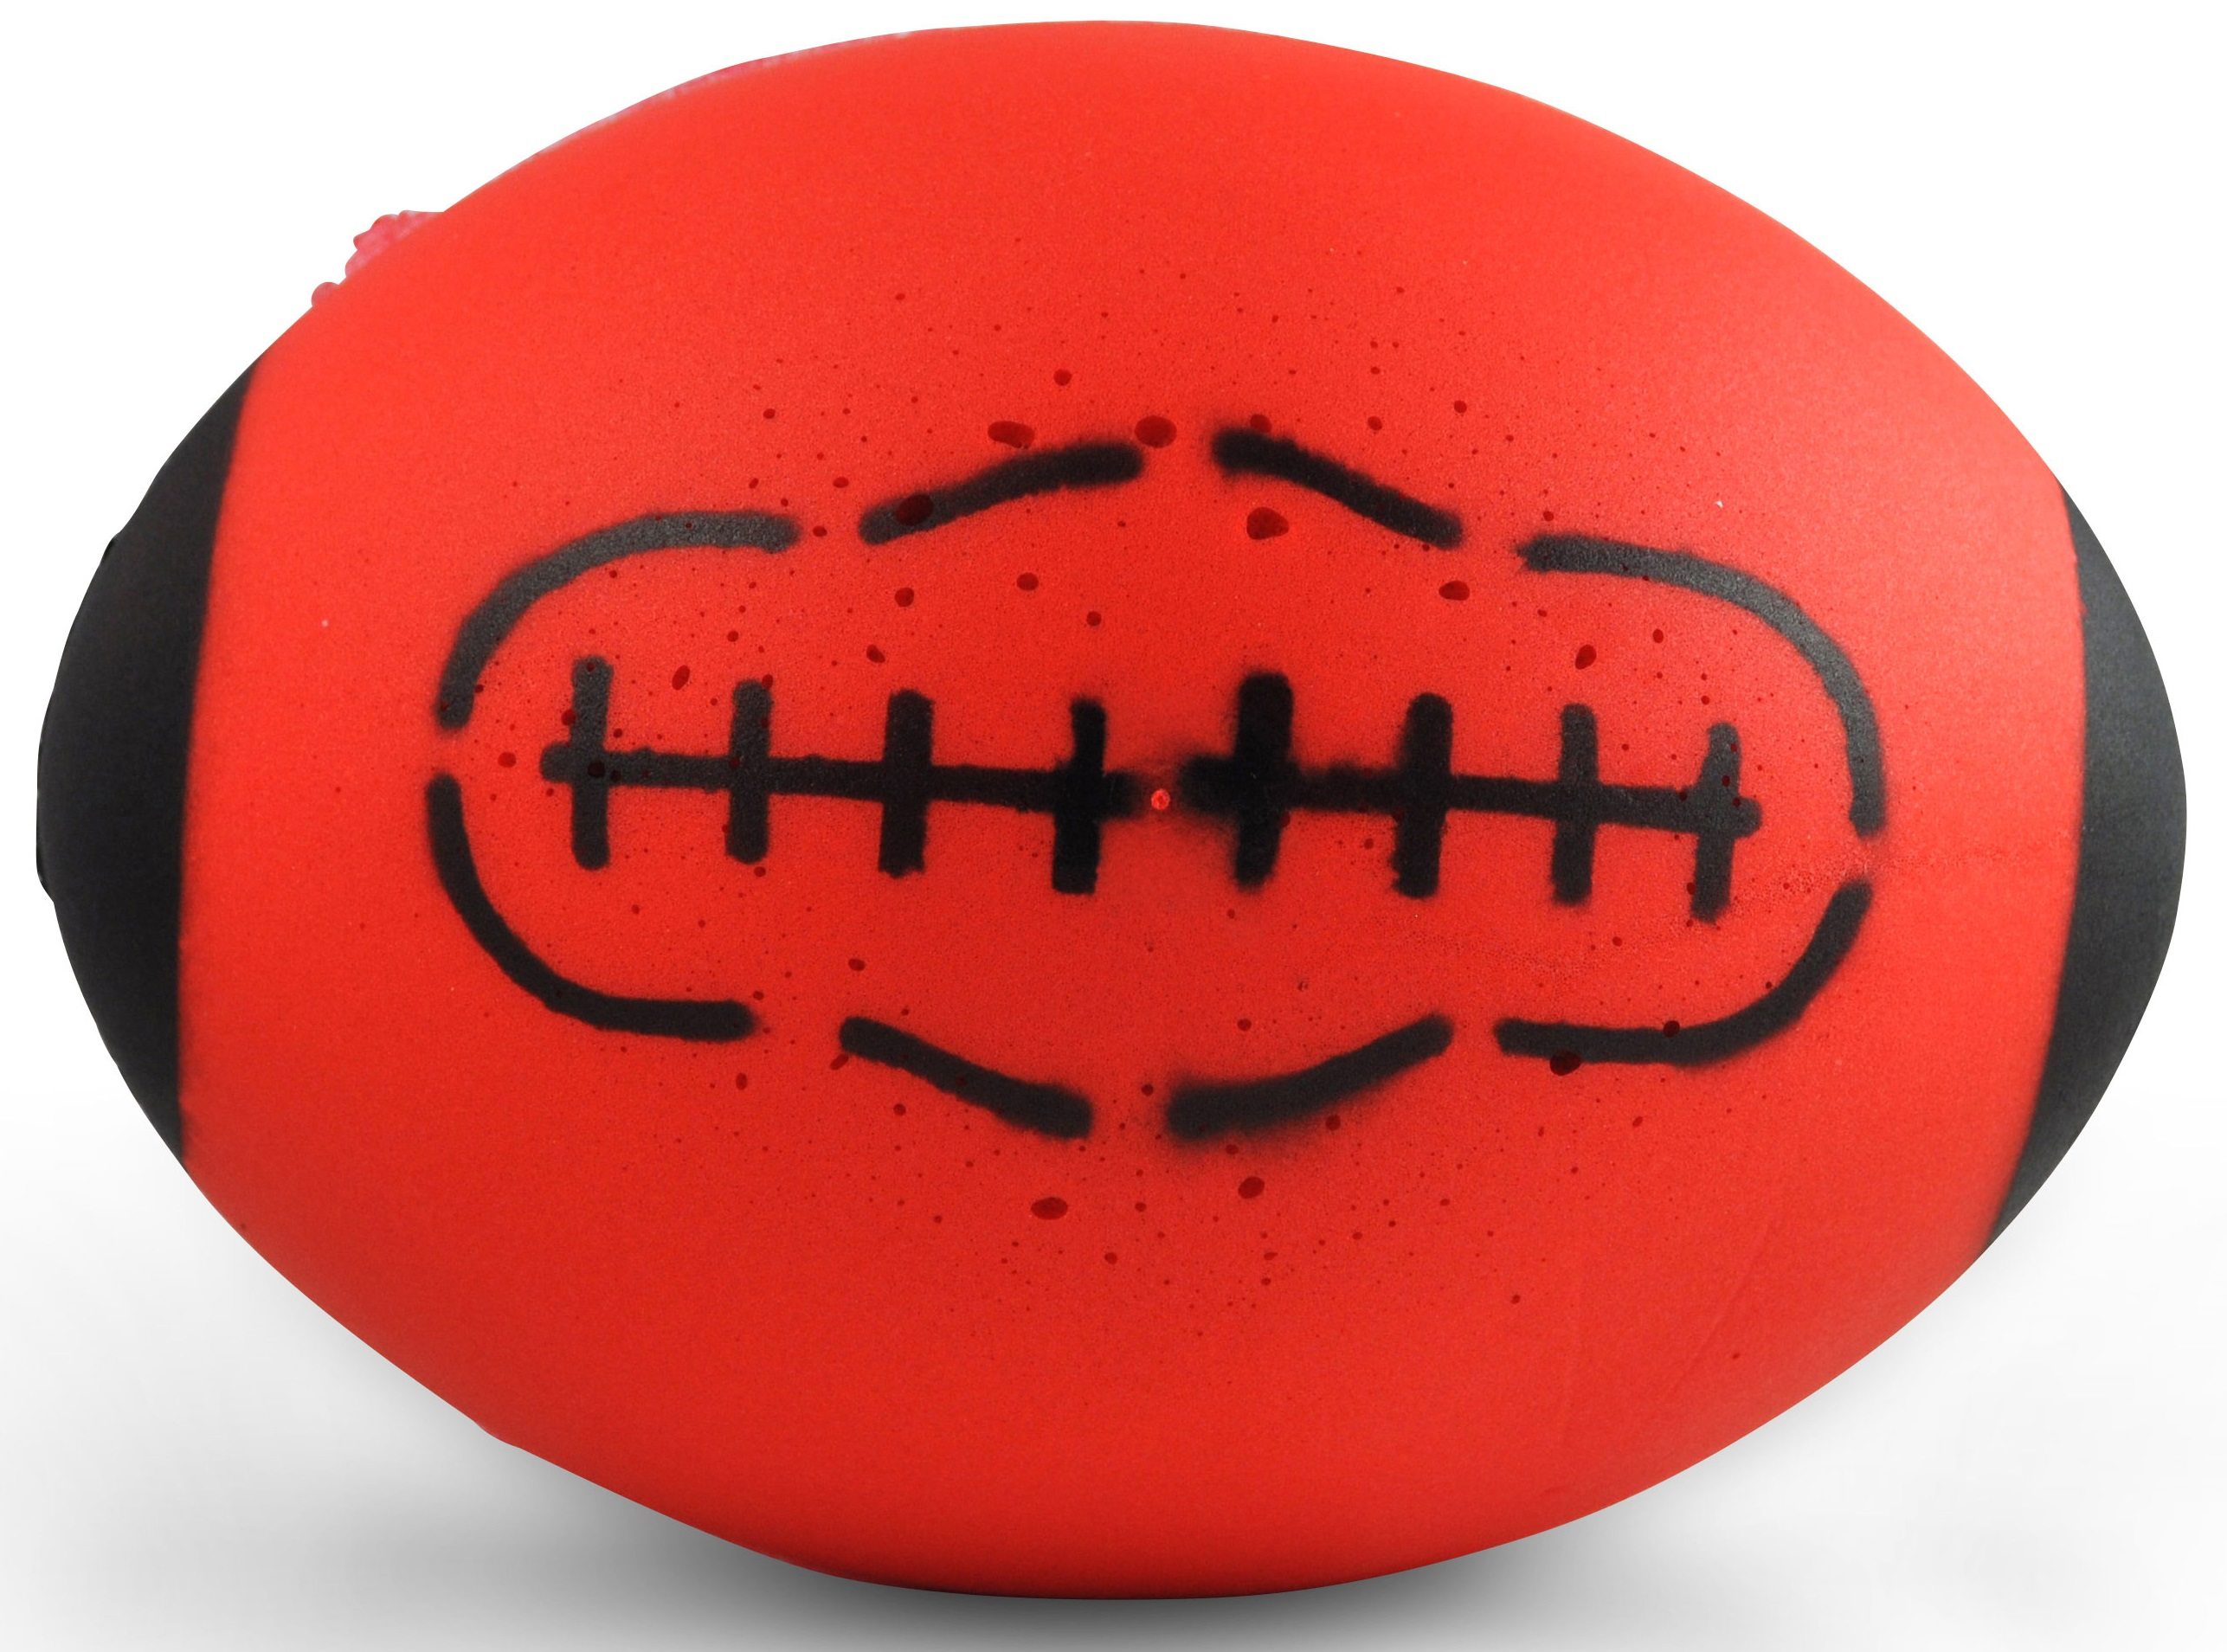 red red red ball